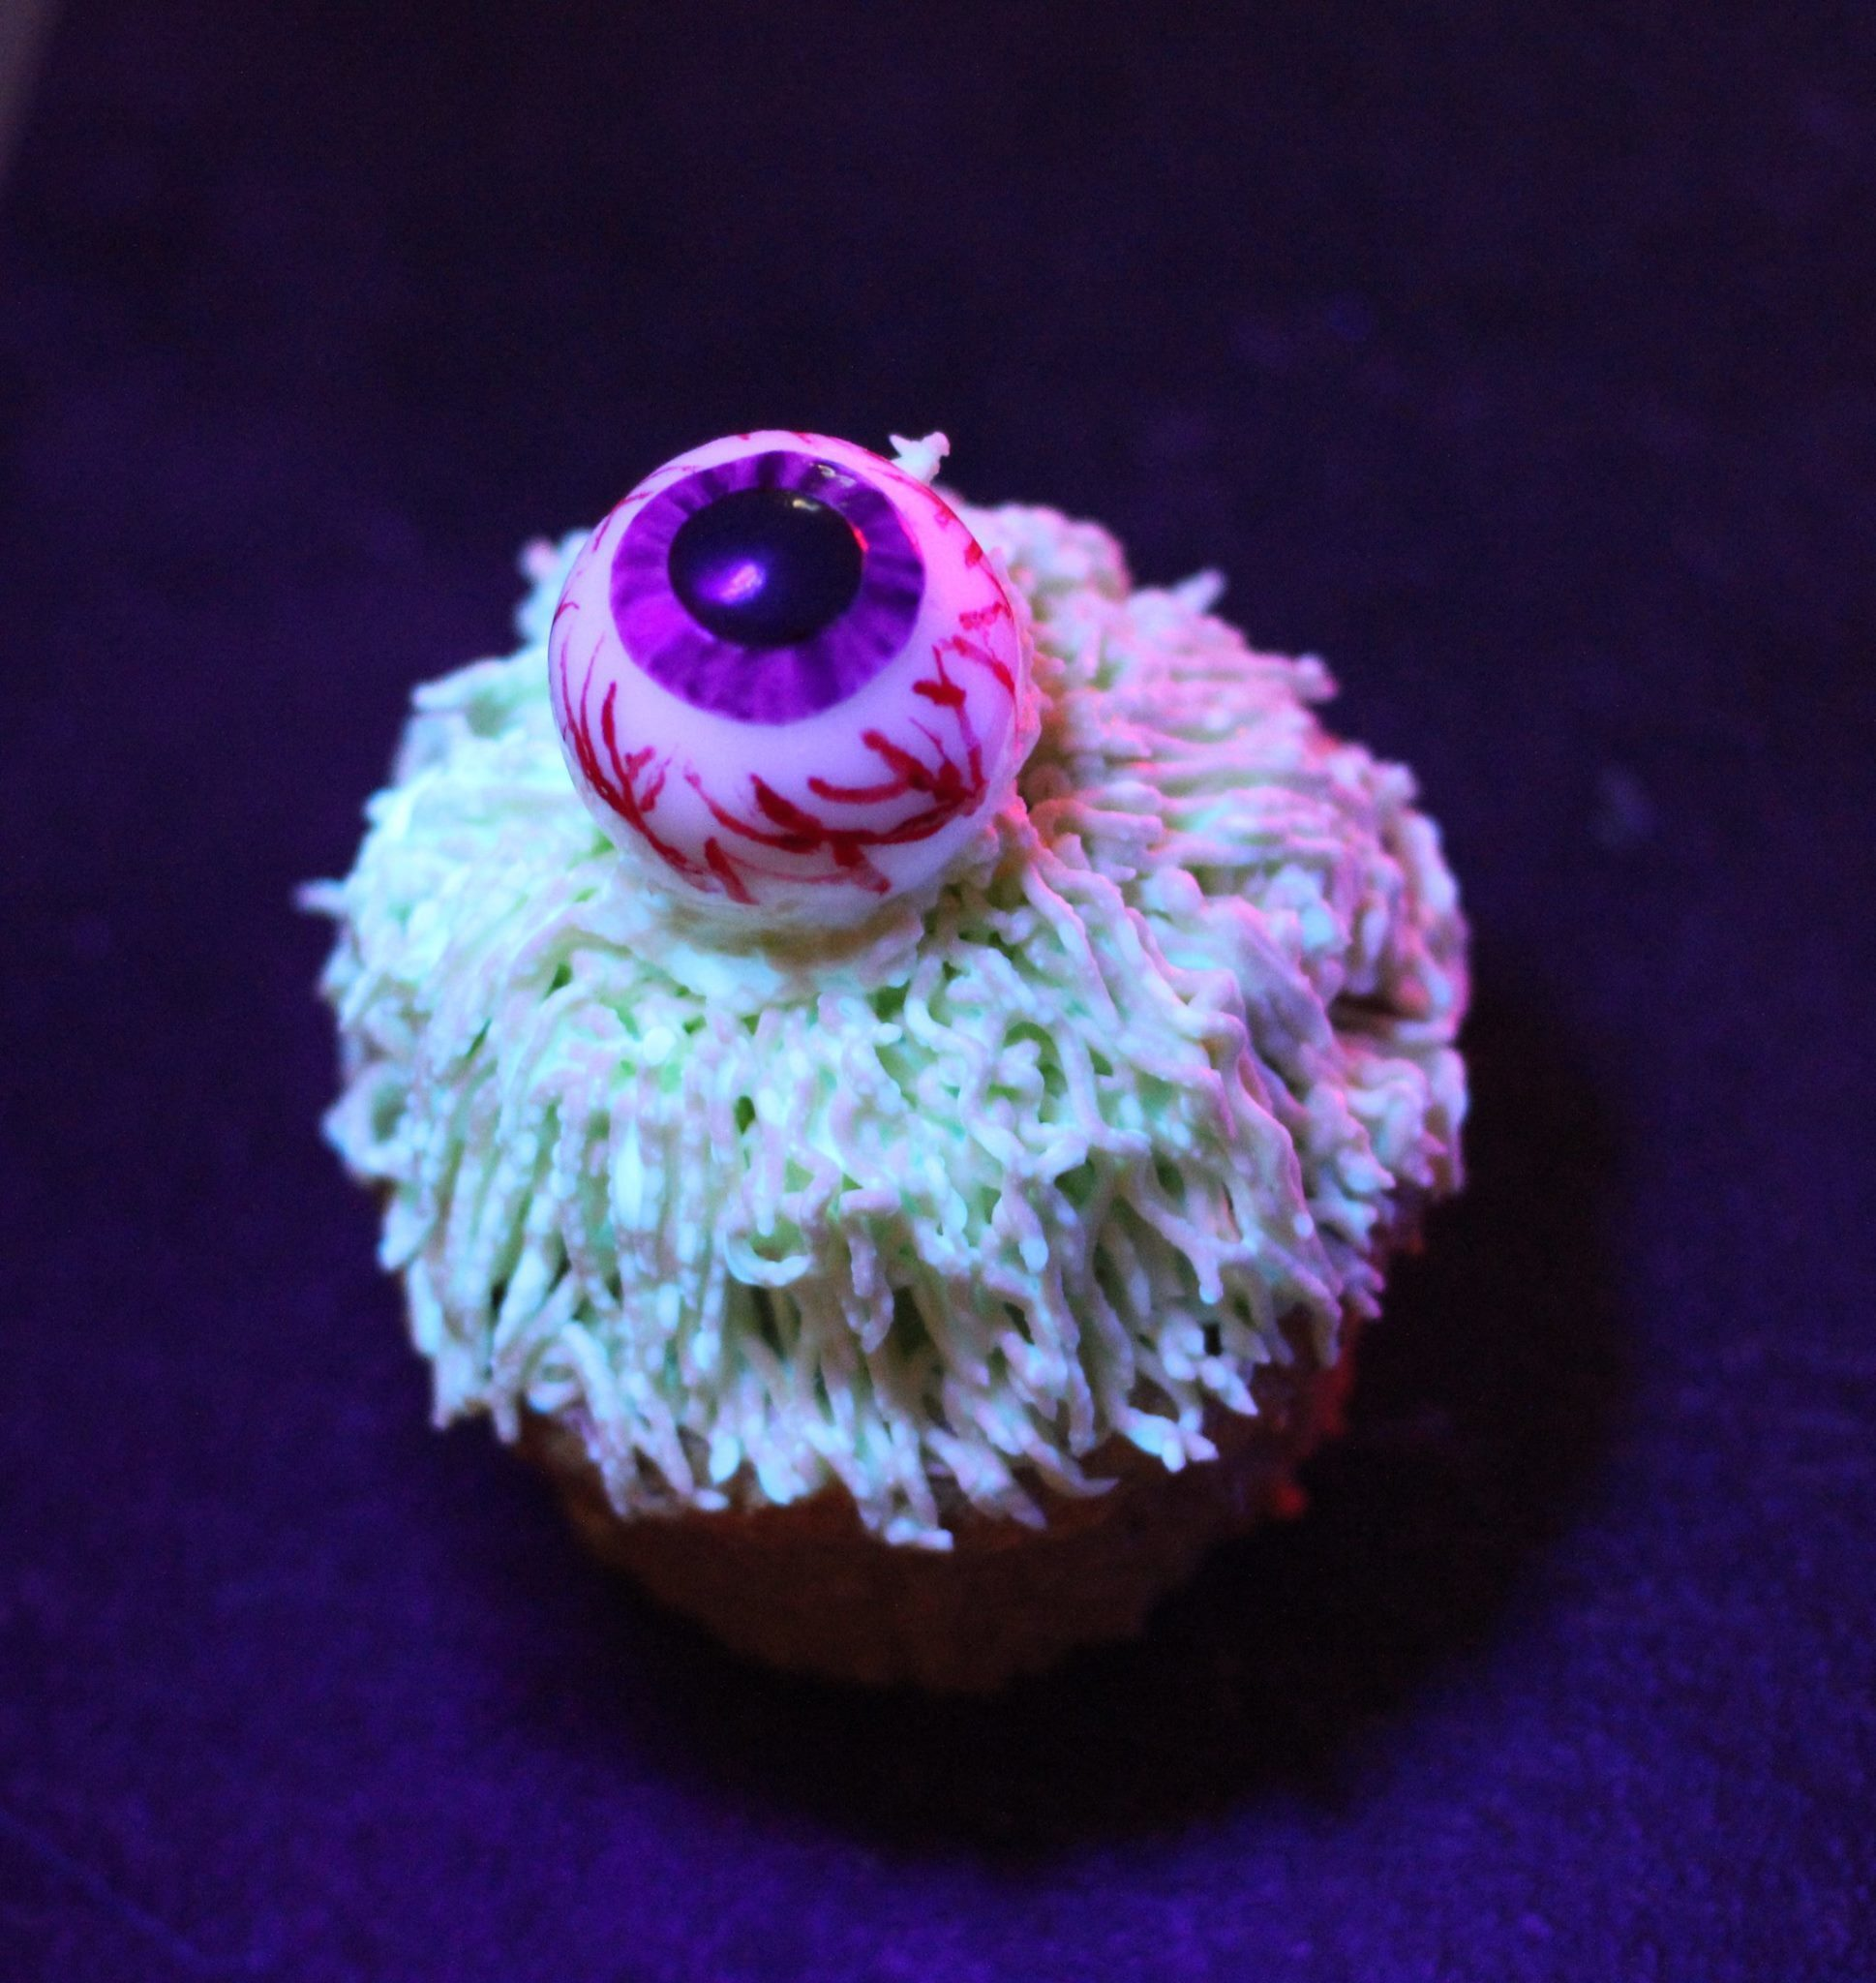 Leuchtende Halloween Monster Cupcakes (Black Halloween Event 2015)